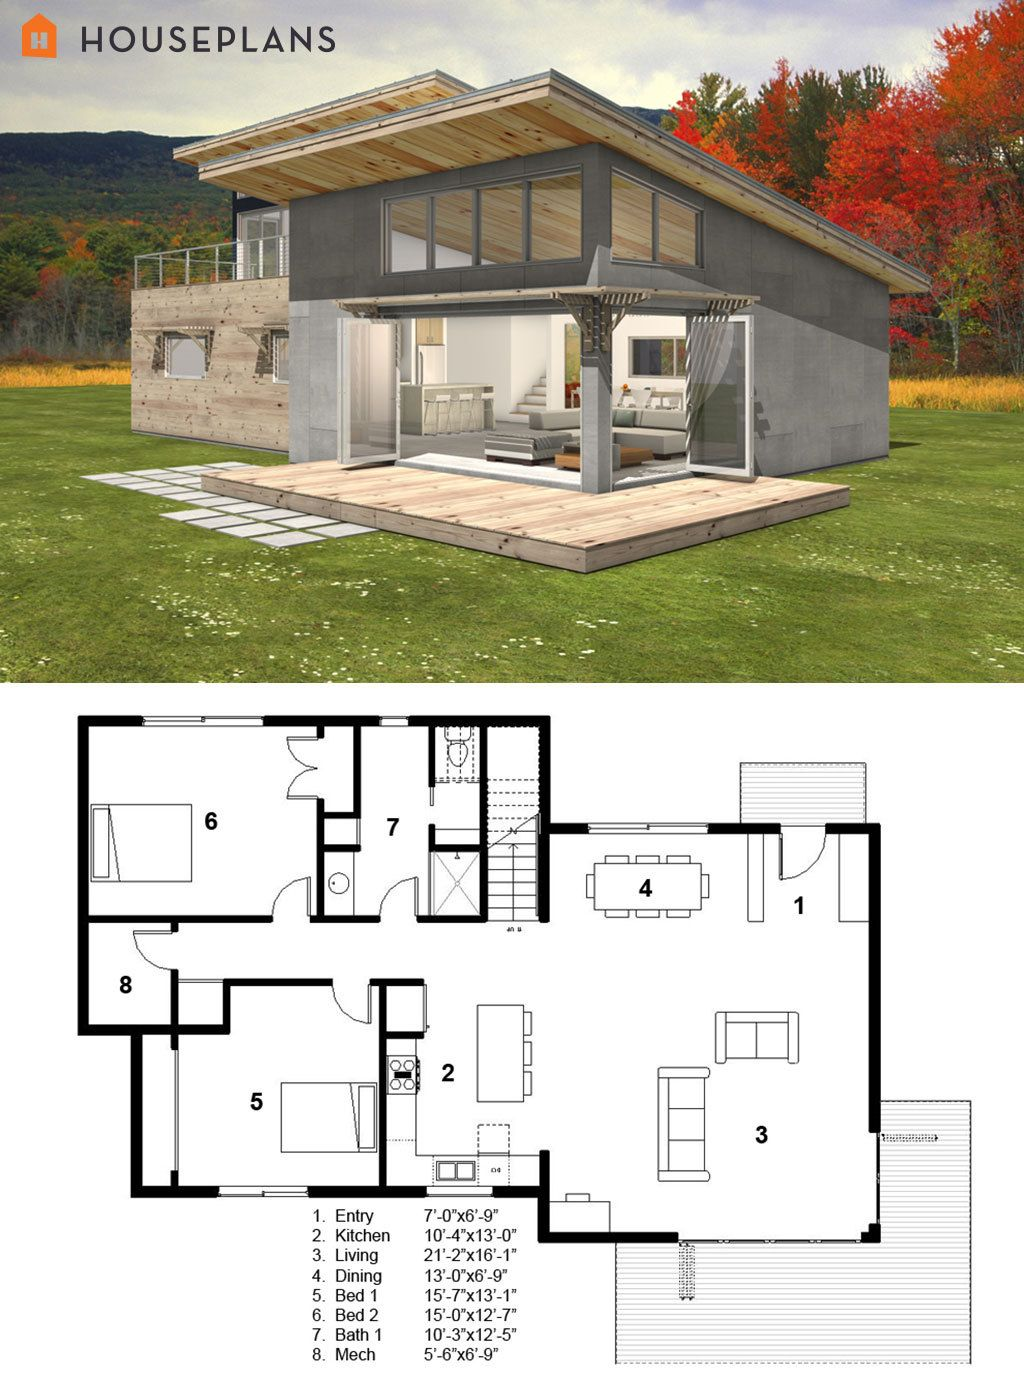 Modern style house plan 3 beds baths 2115 sq ft for Contemporary house plans 2015